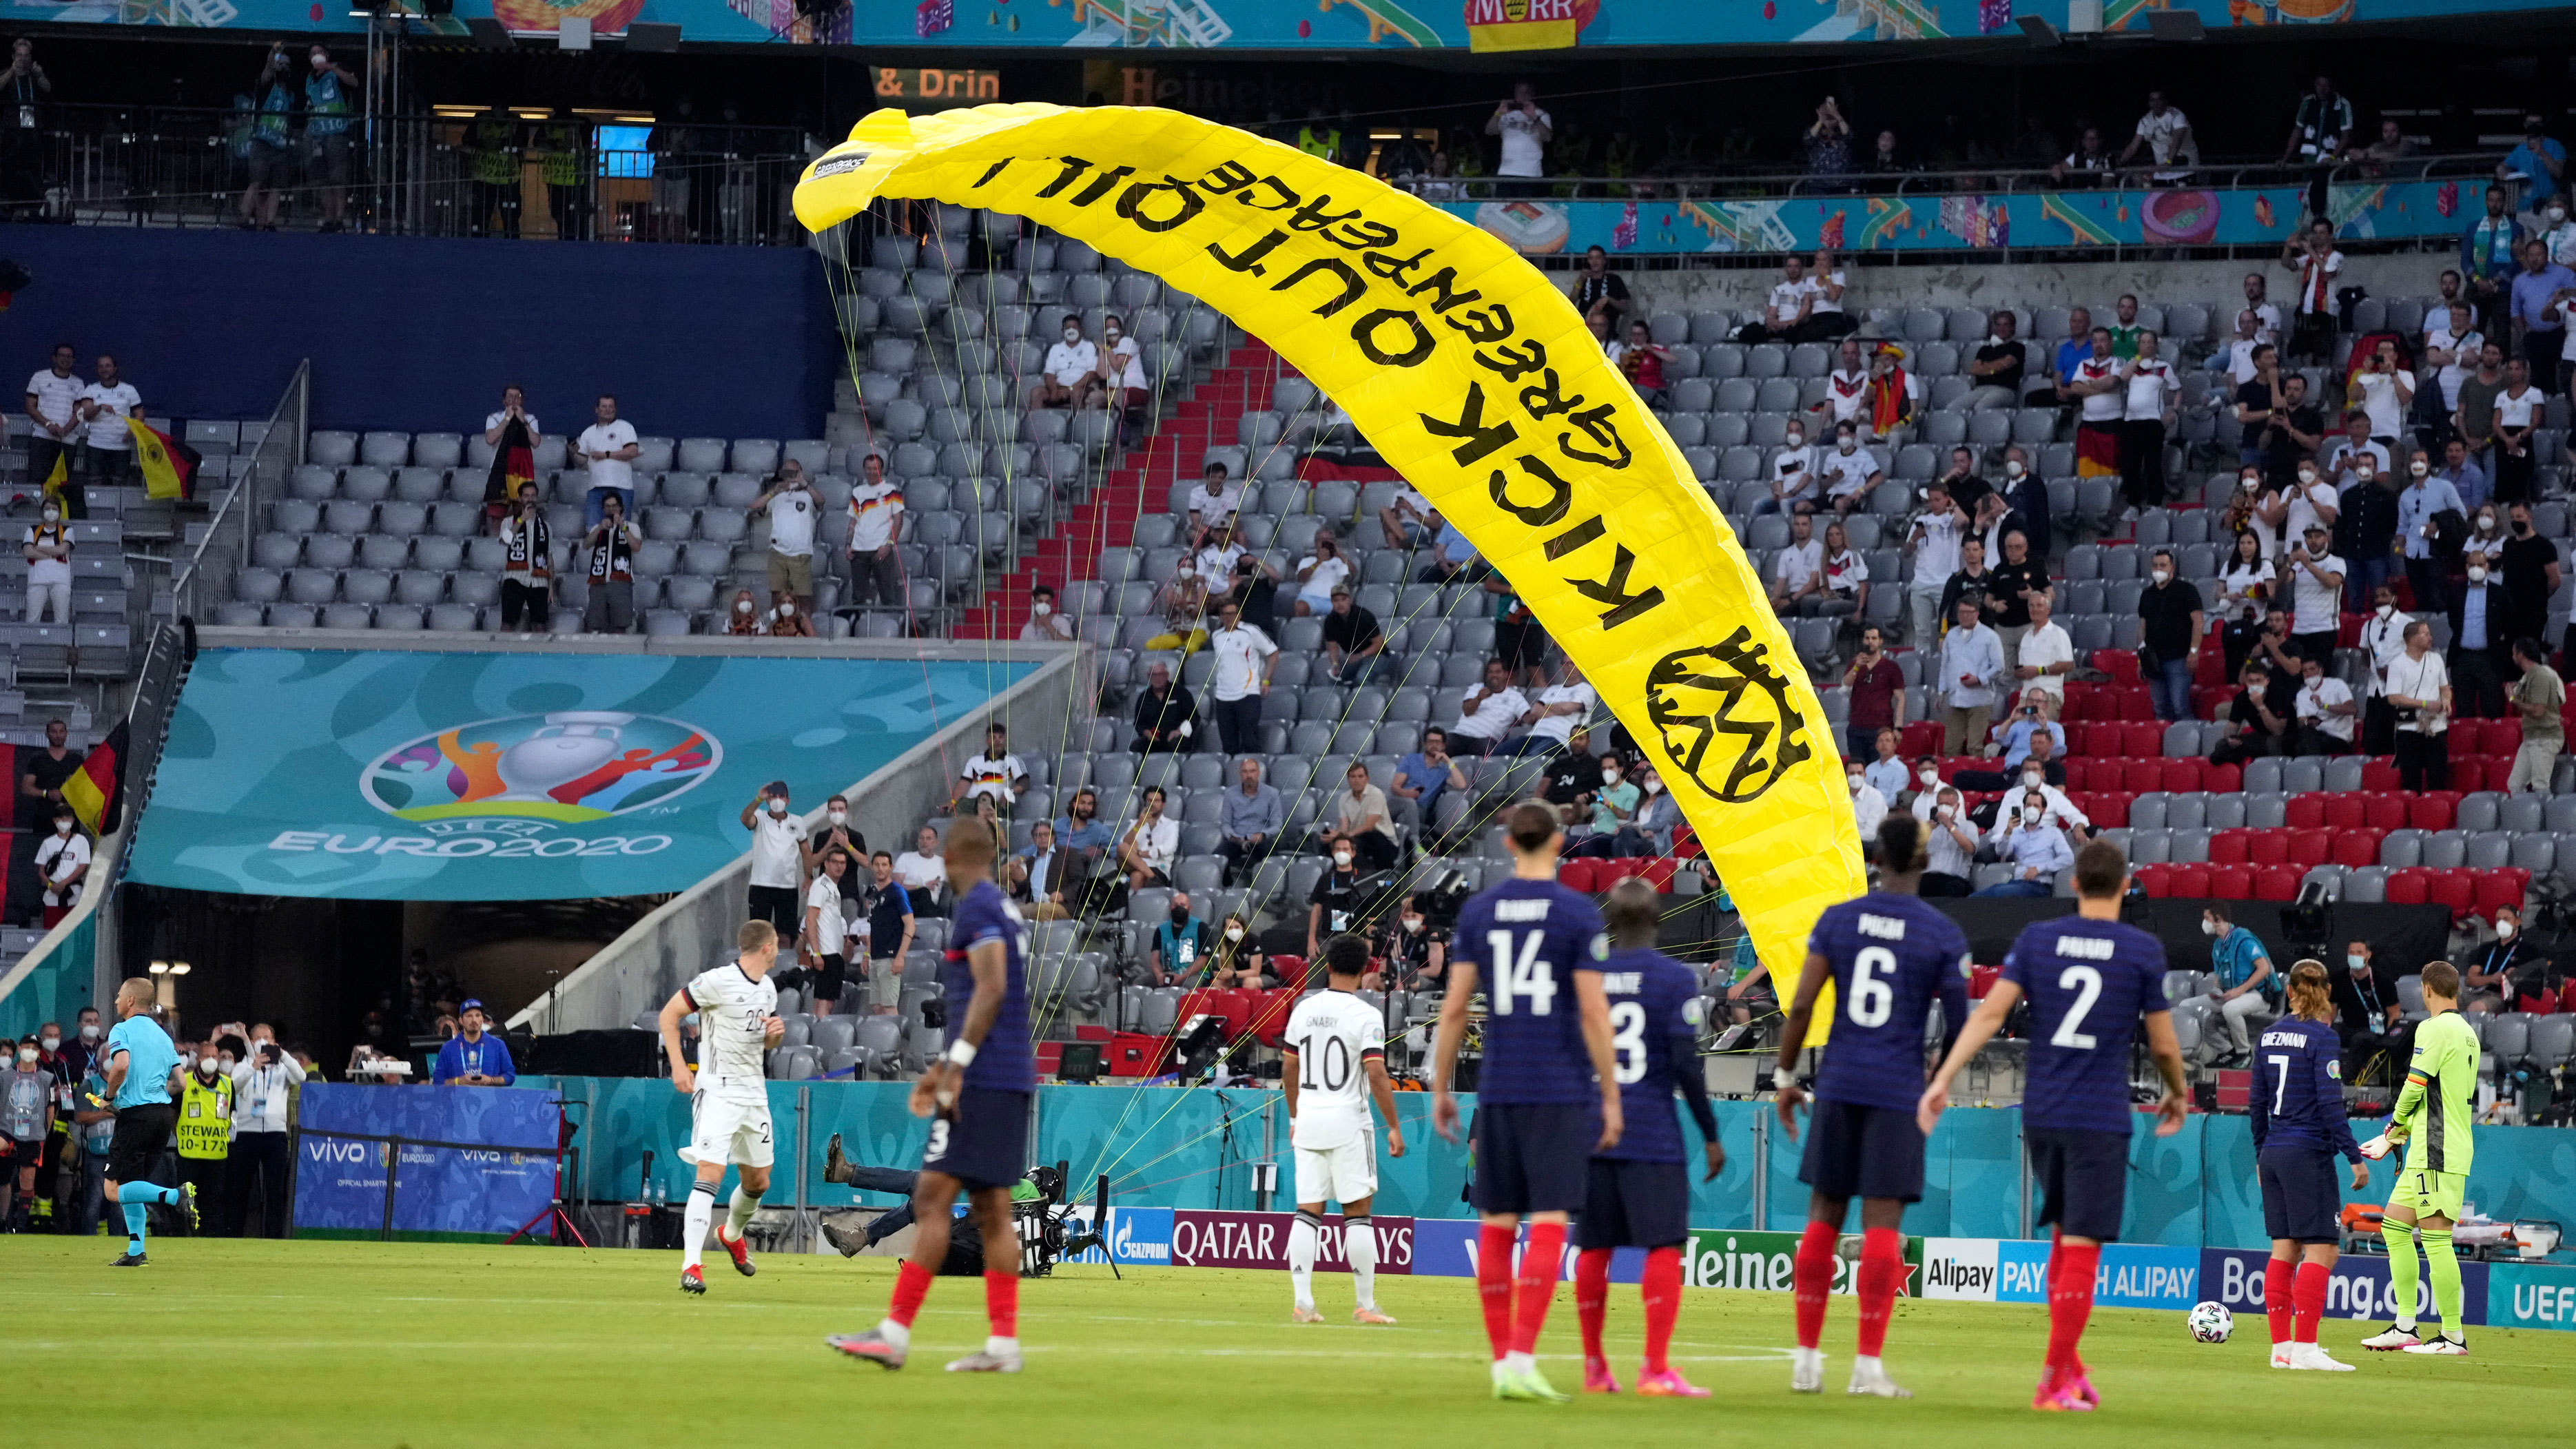 Germany vs. France: 'Kick out oil' protester parachutes into Allianz Arena stadium ahead of Euro 2020 match